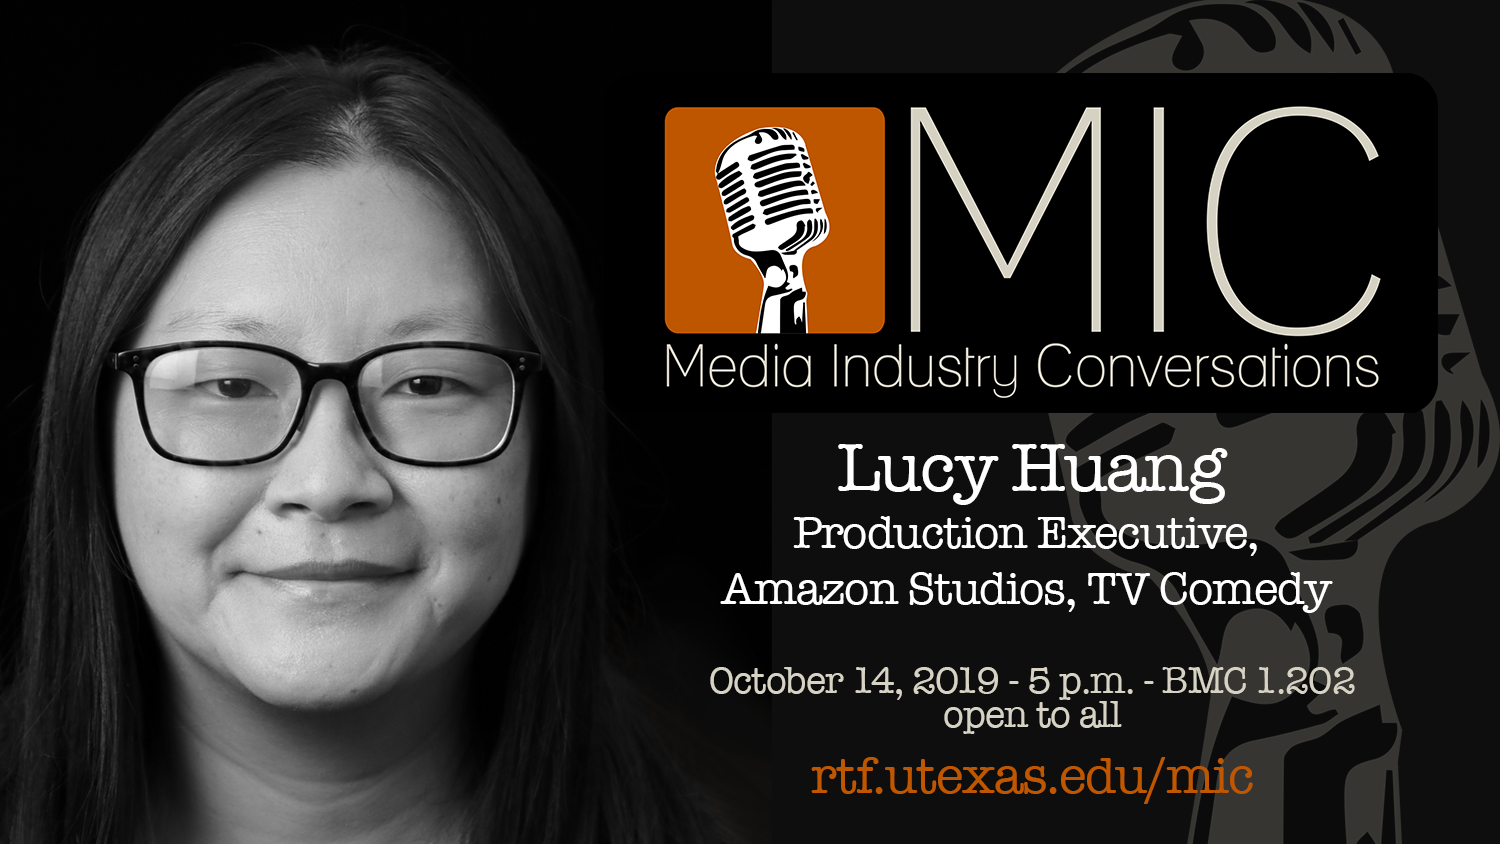 lucy_huang_MIC_talk_october_14_2019_5pm_BMC_1.202